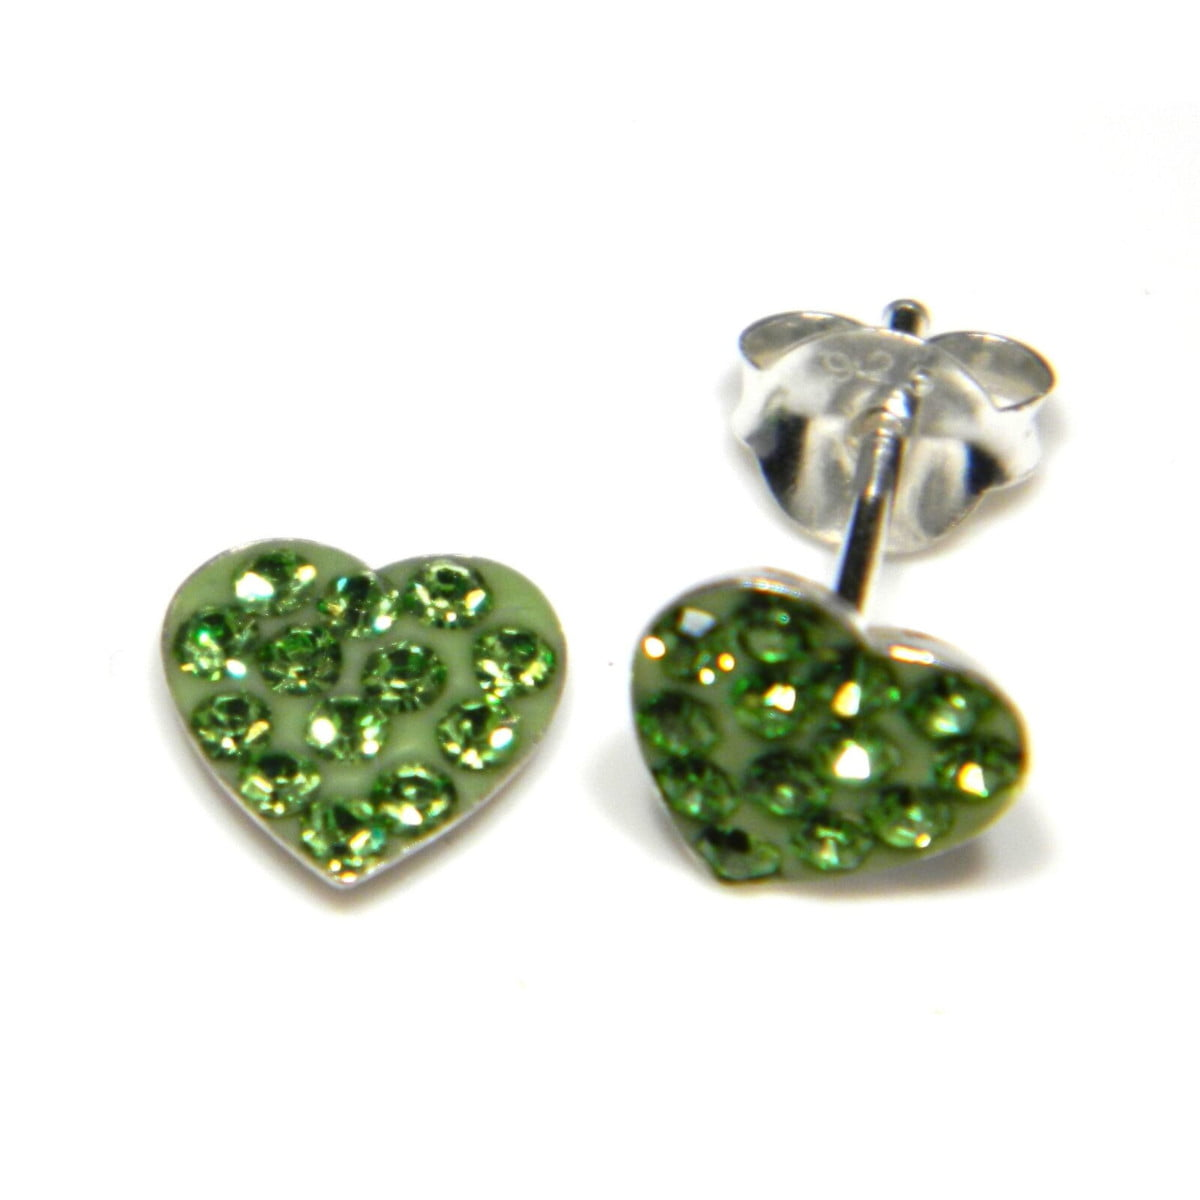 7 mm green coloured crystal heart stud earrings in sterling silver